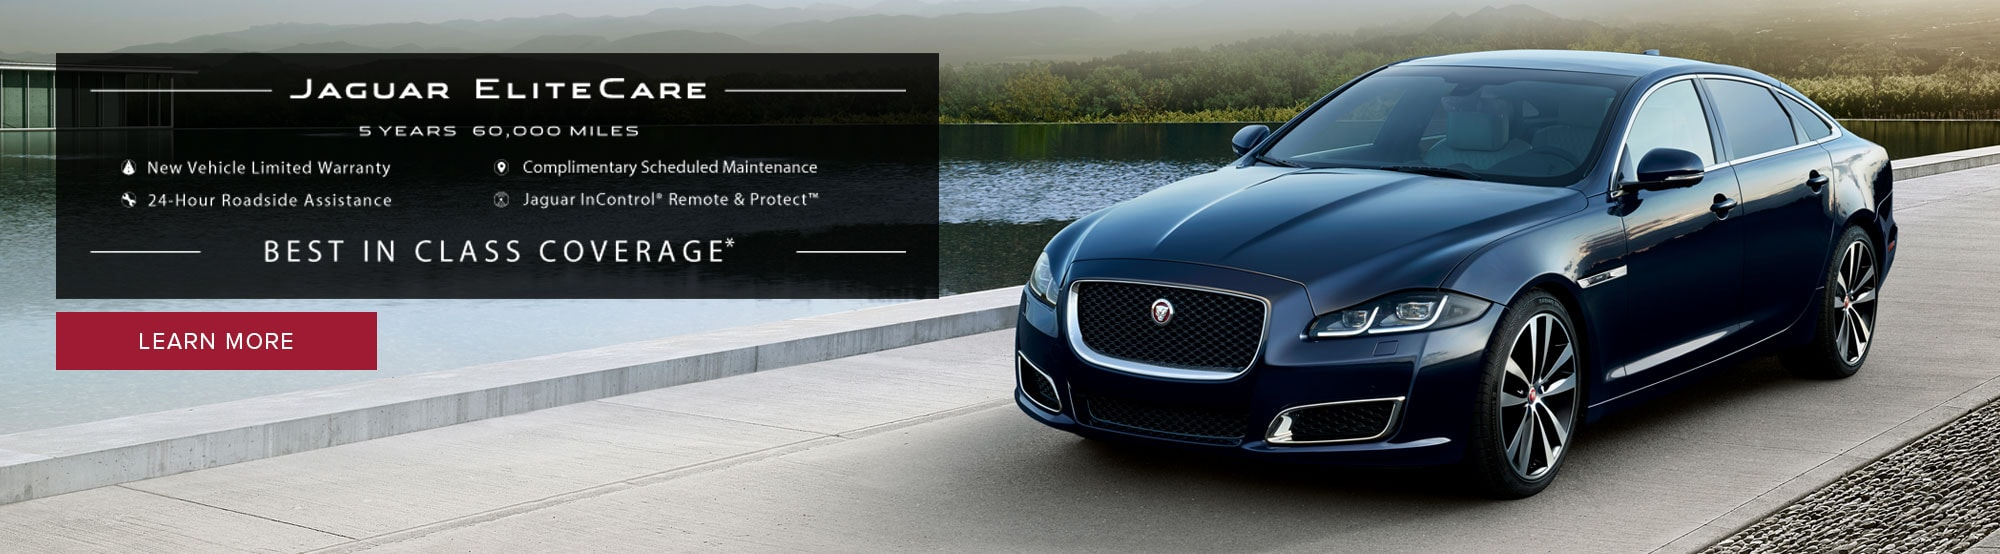 New And Used Jaguar Dealership In Dallas Jaguar Dallas